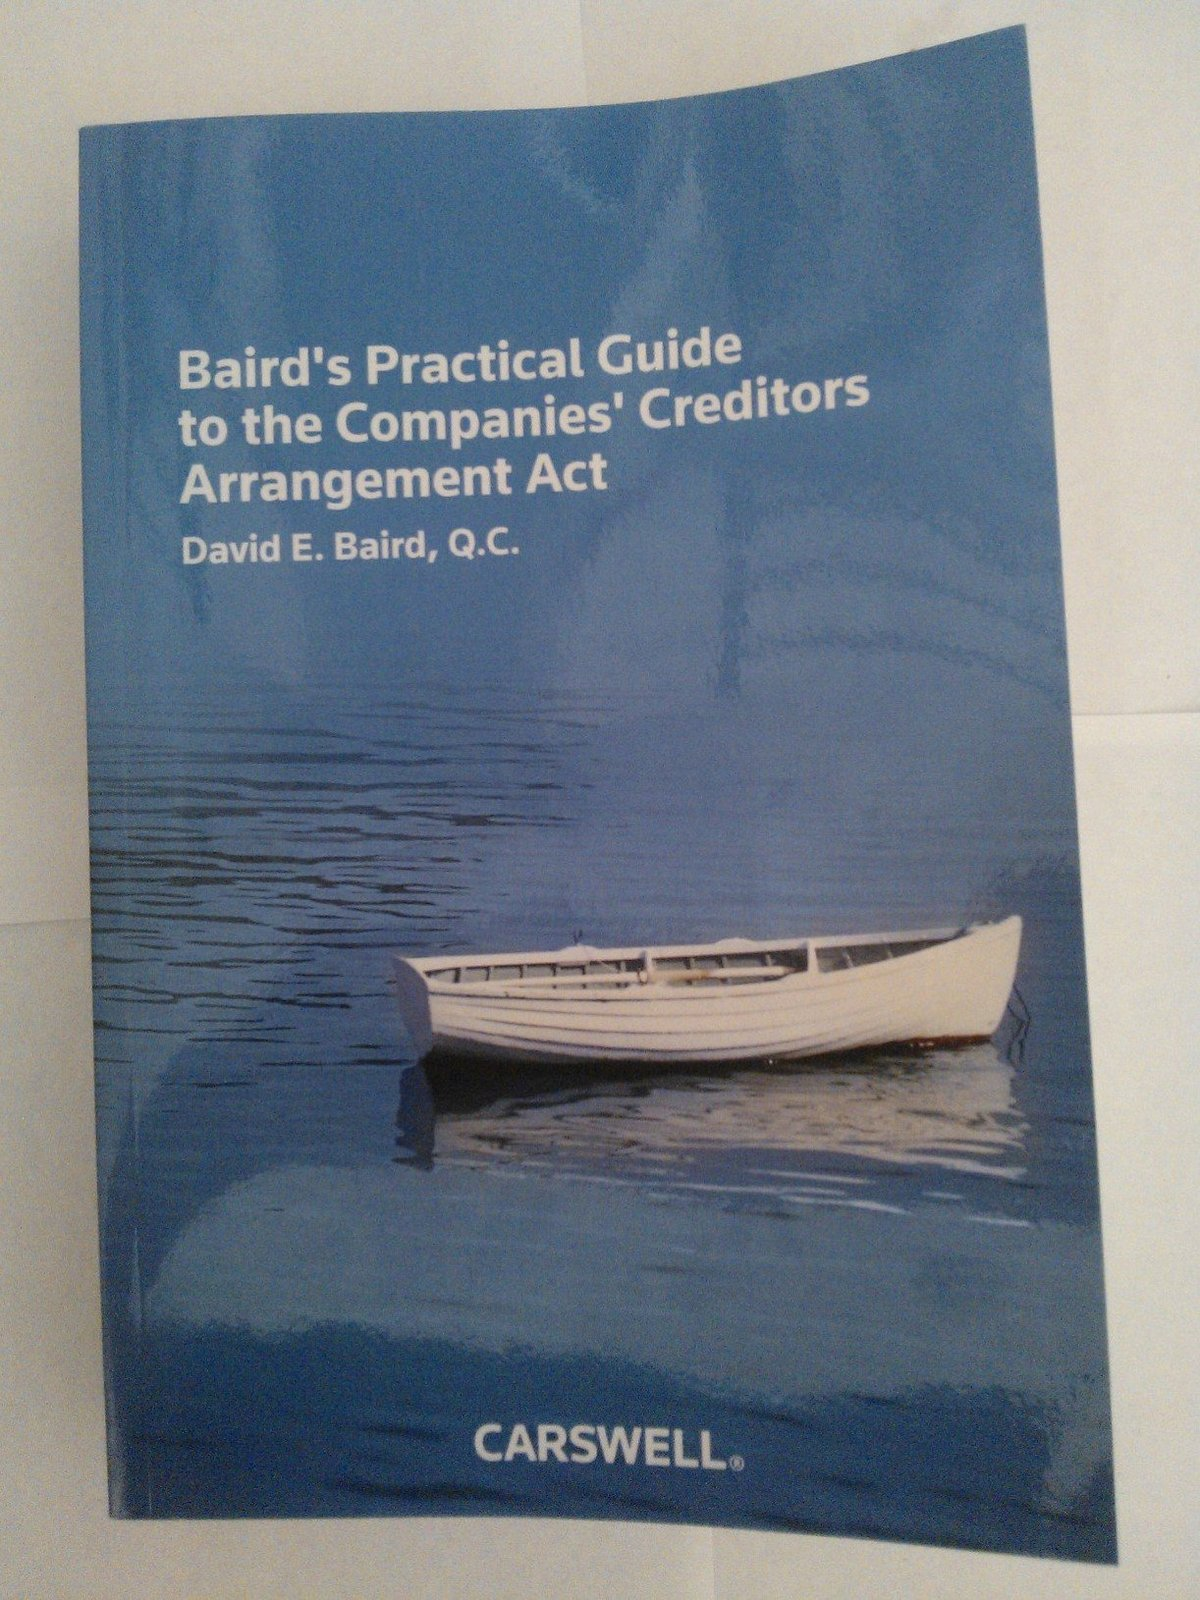 Baird' Practical Guide to the Companies Creditors Arrangement Act [Paperback] Ba